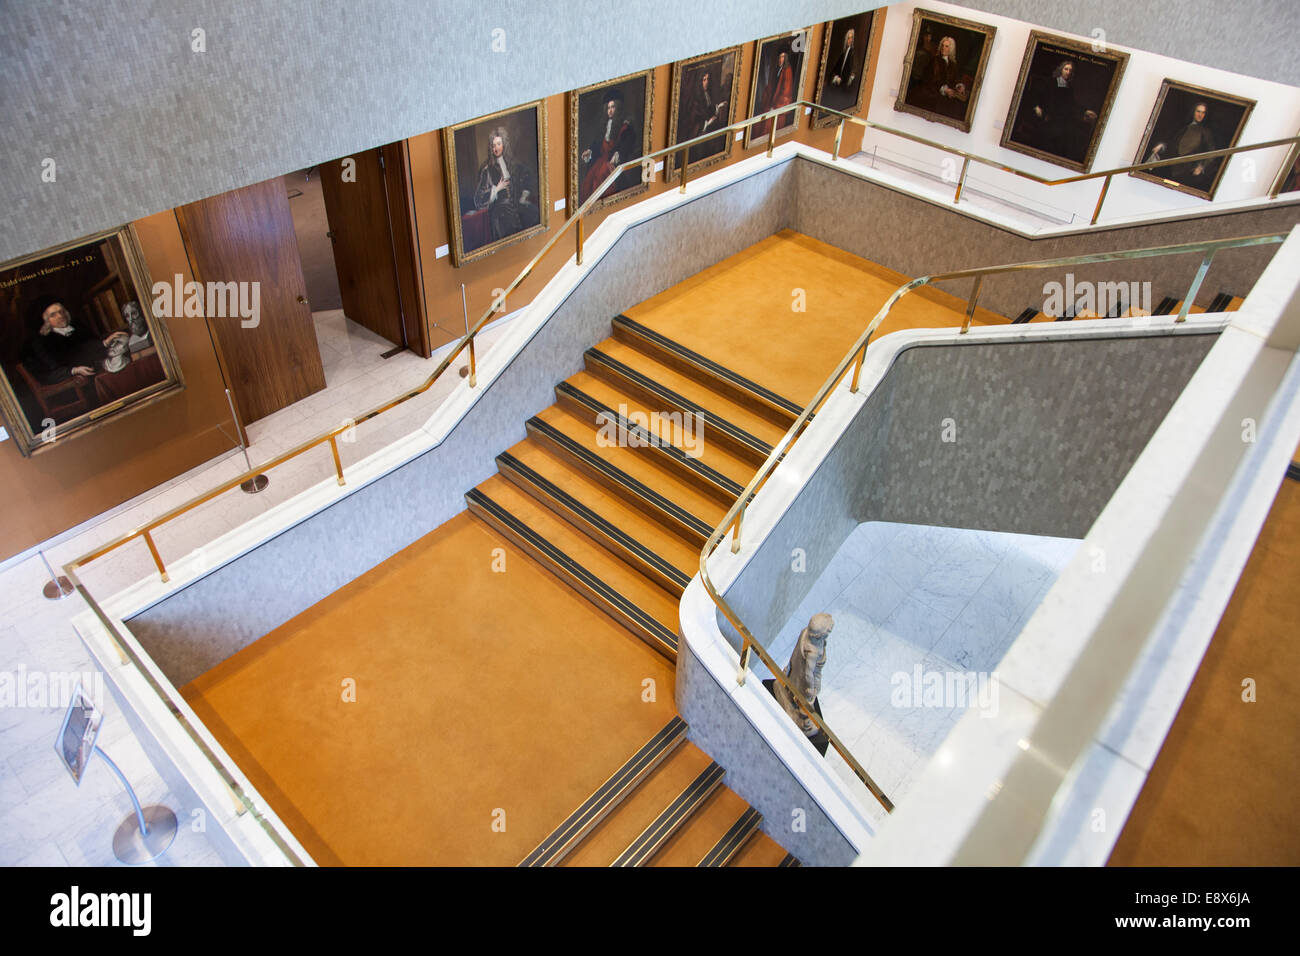 Interior of the Royal College of Physicians - London, England - Stock Image